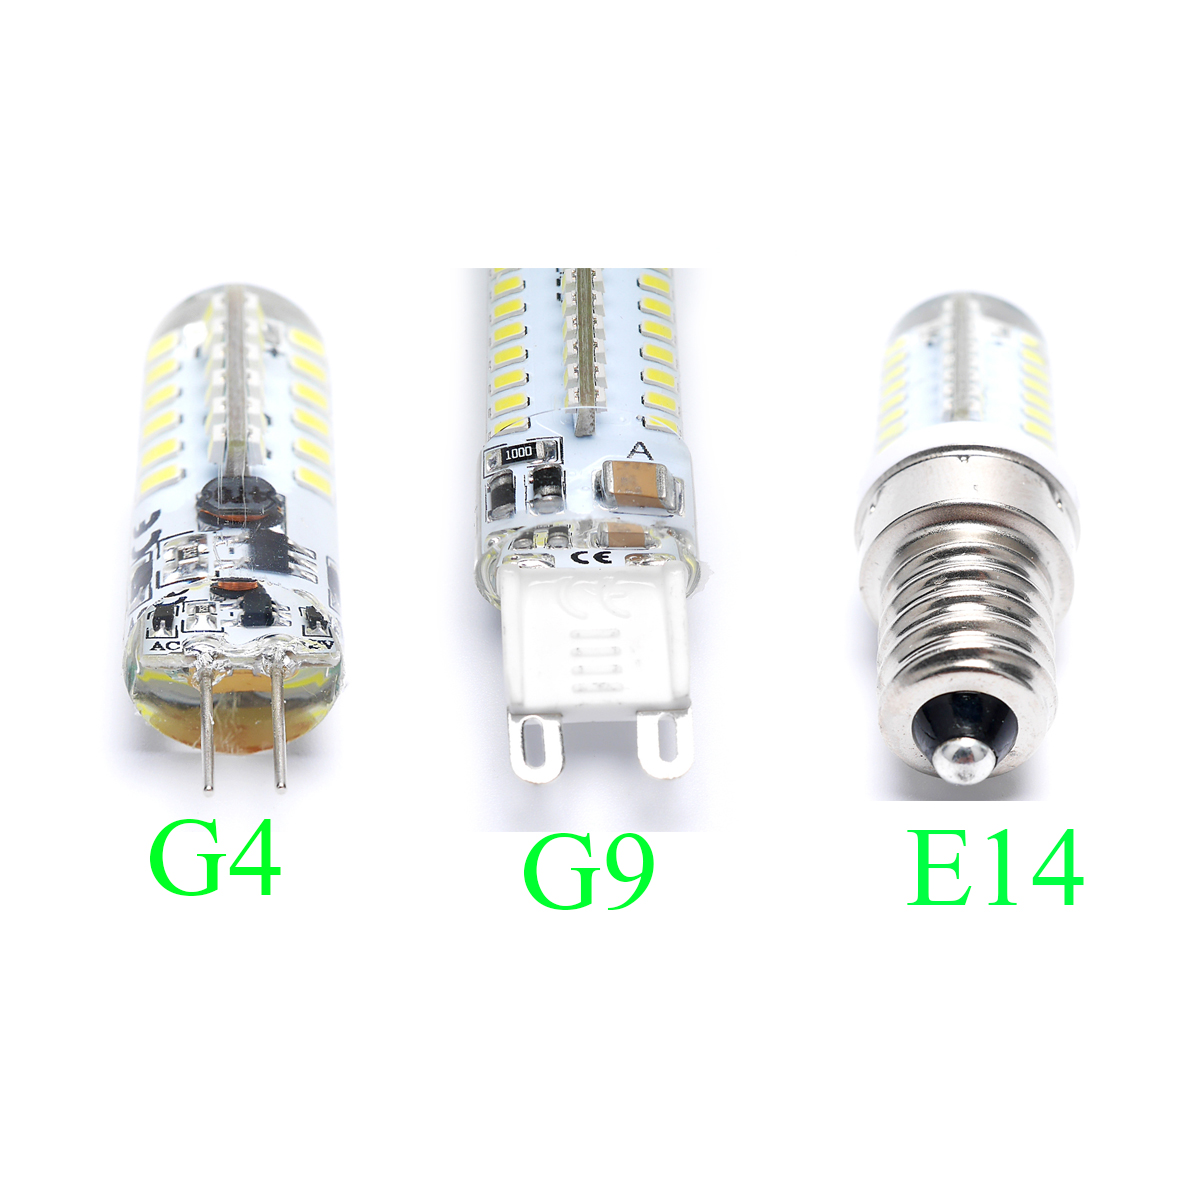 wow g4 g9 e14 led light capsule bulbs replace halogen lamp energy saving ac dc ebay. Black Bedroom Furniture Sets. Home Design Ideas